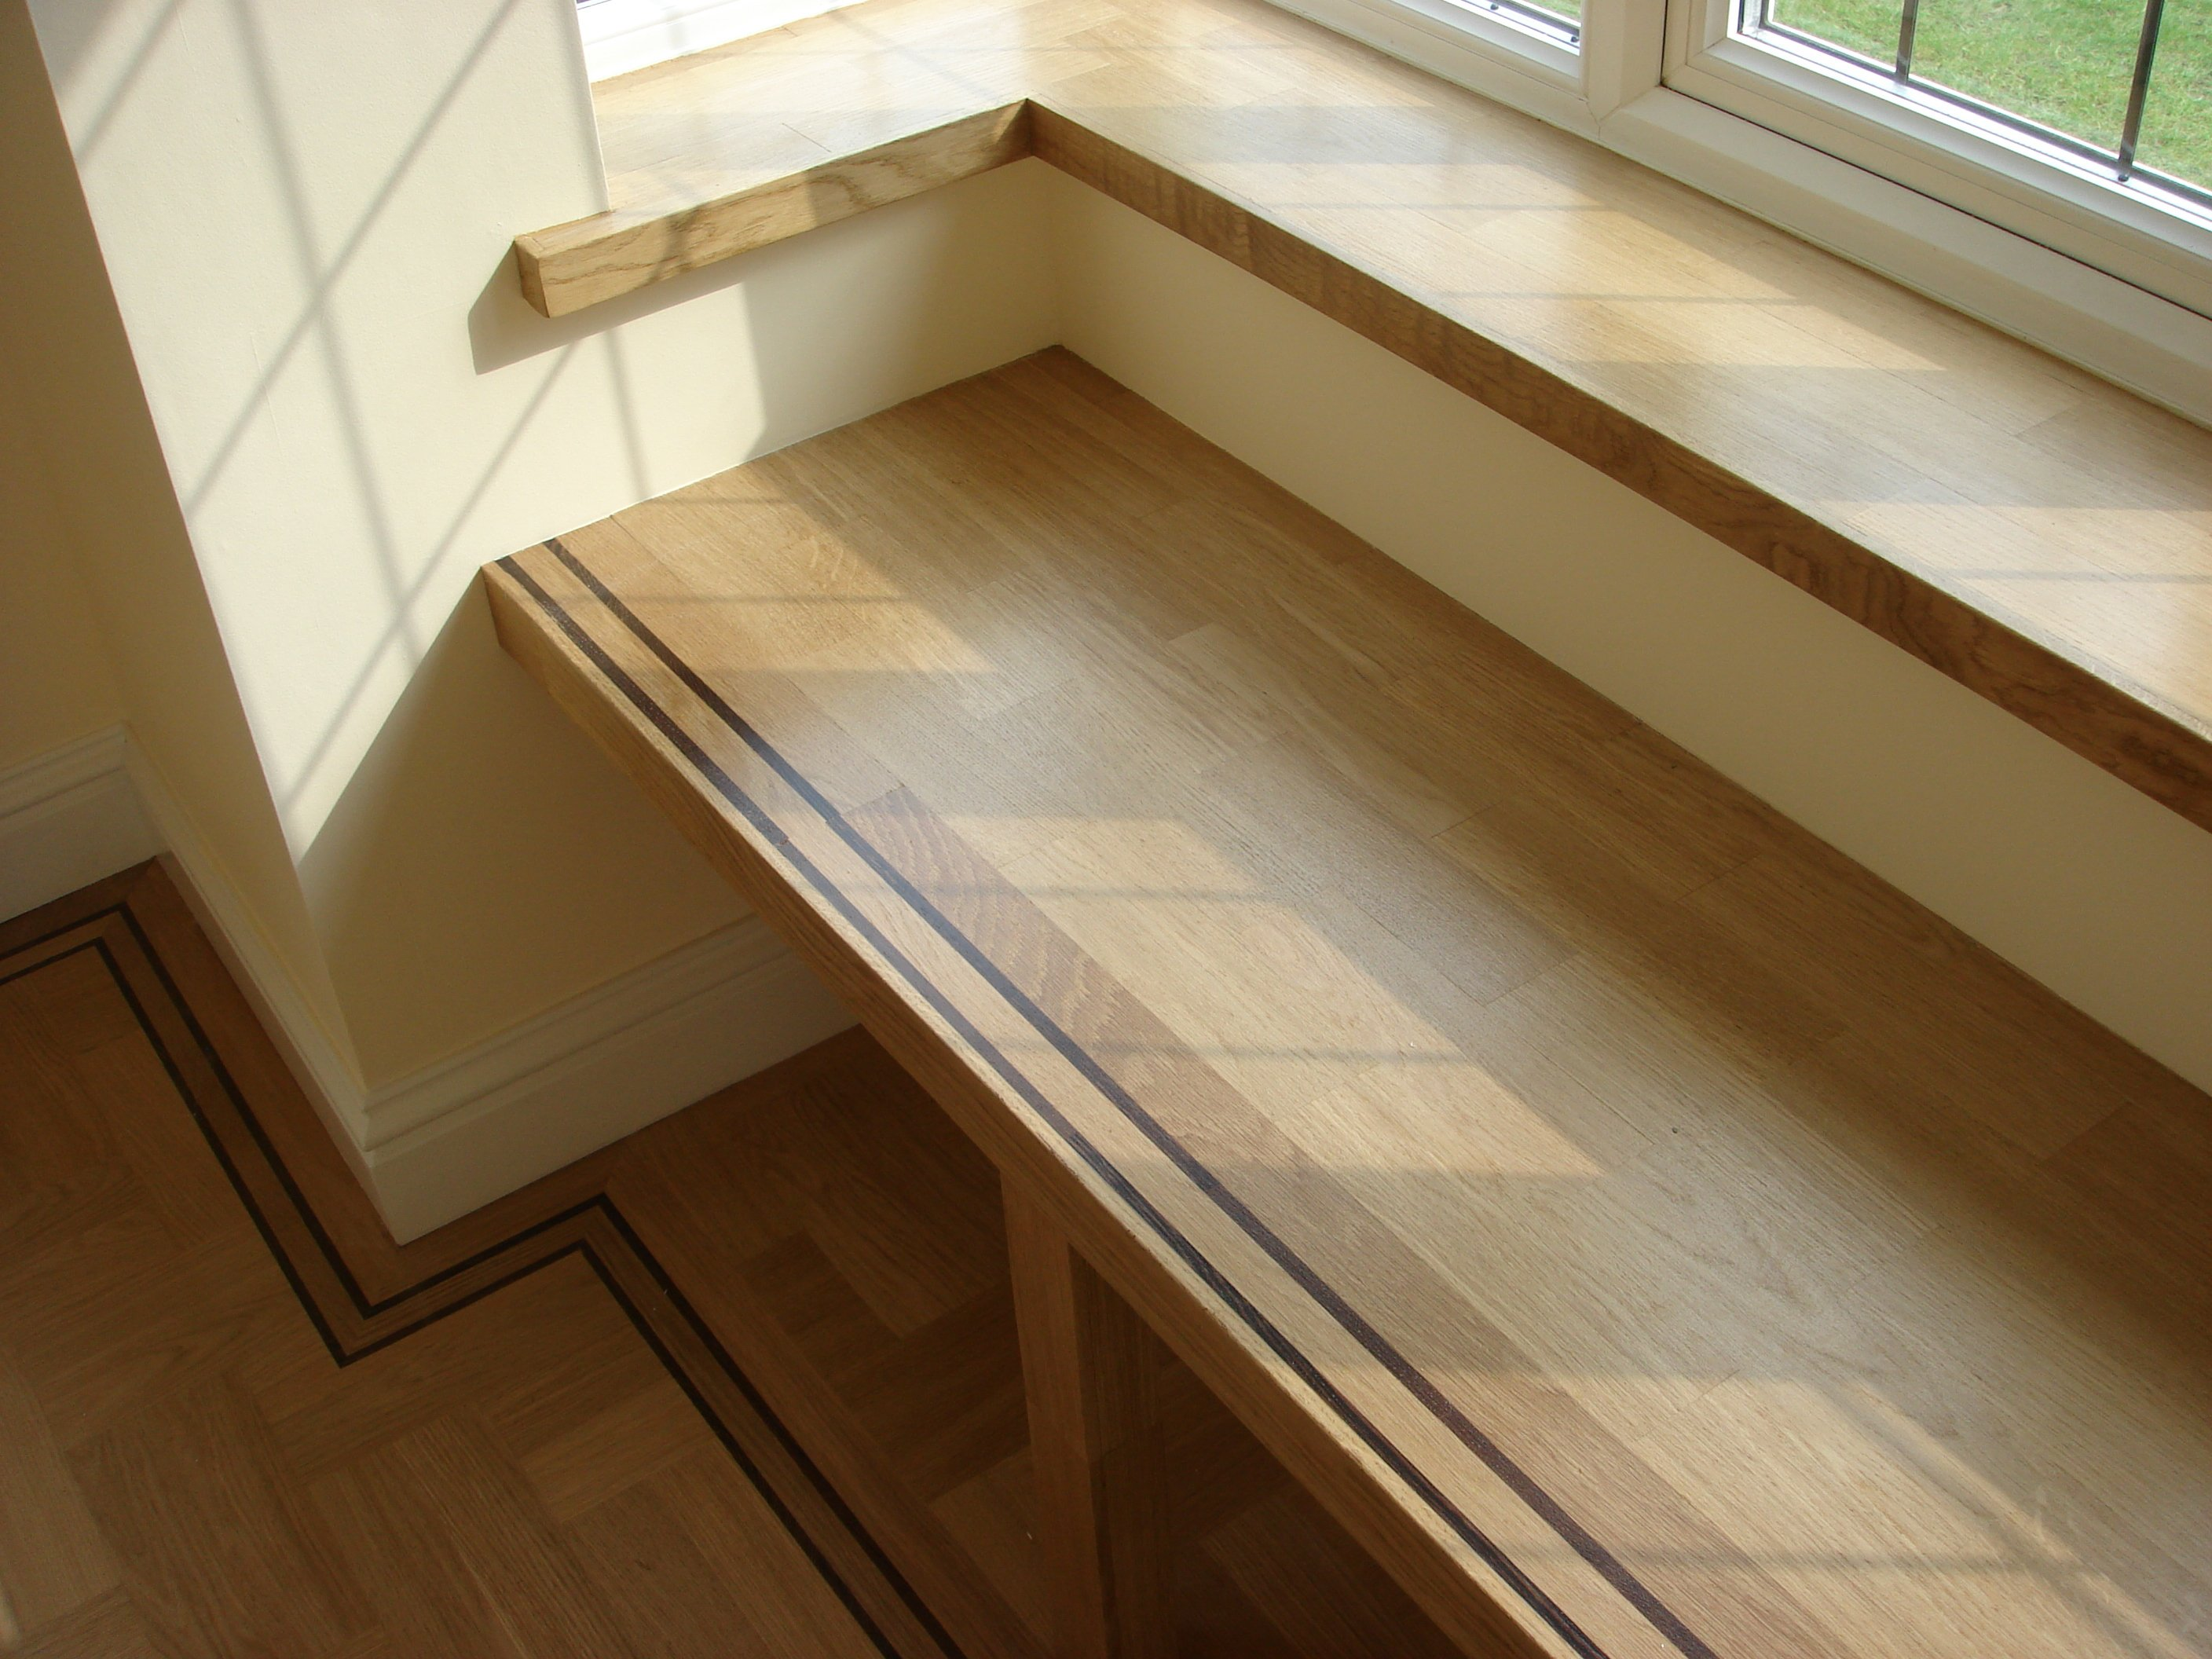 wood flooring fitted under built in seating